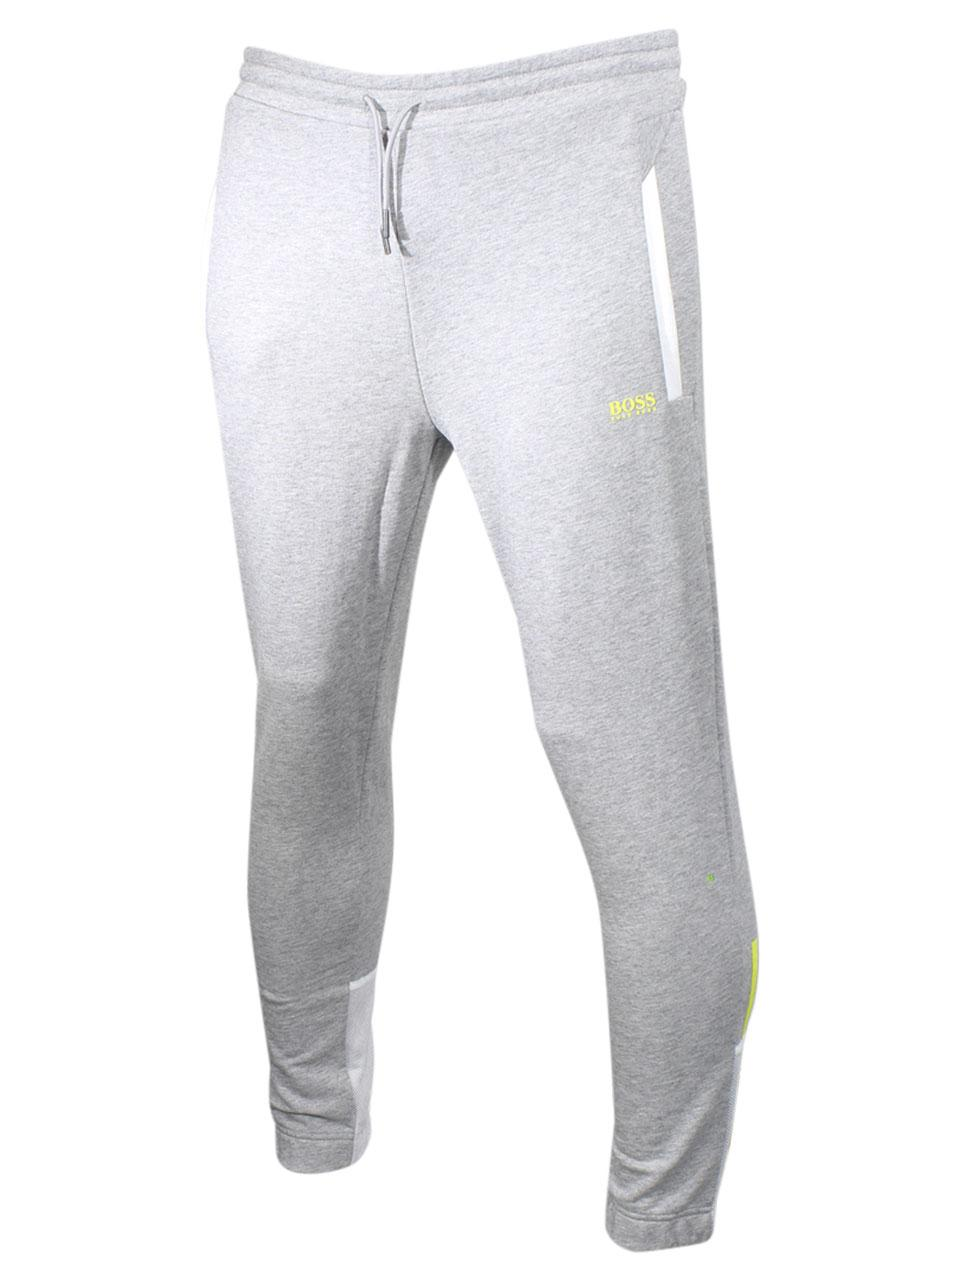 775e2fc58 Hugo Boss Men's Halko Cotton Sweatpants